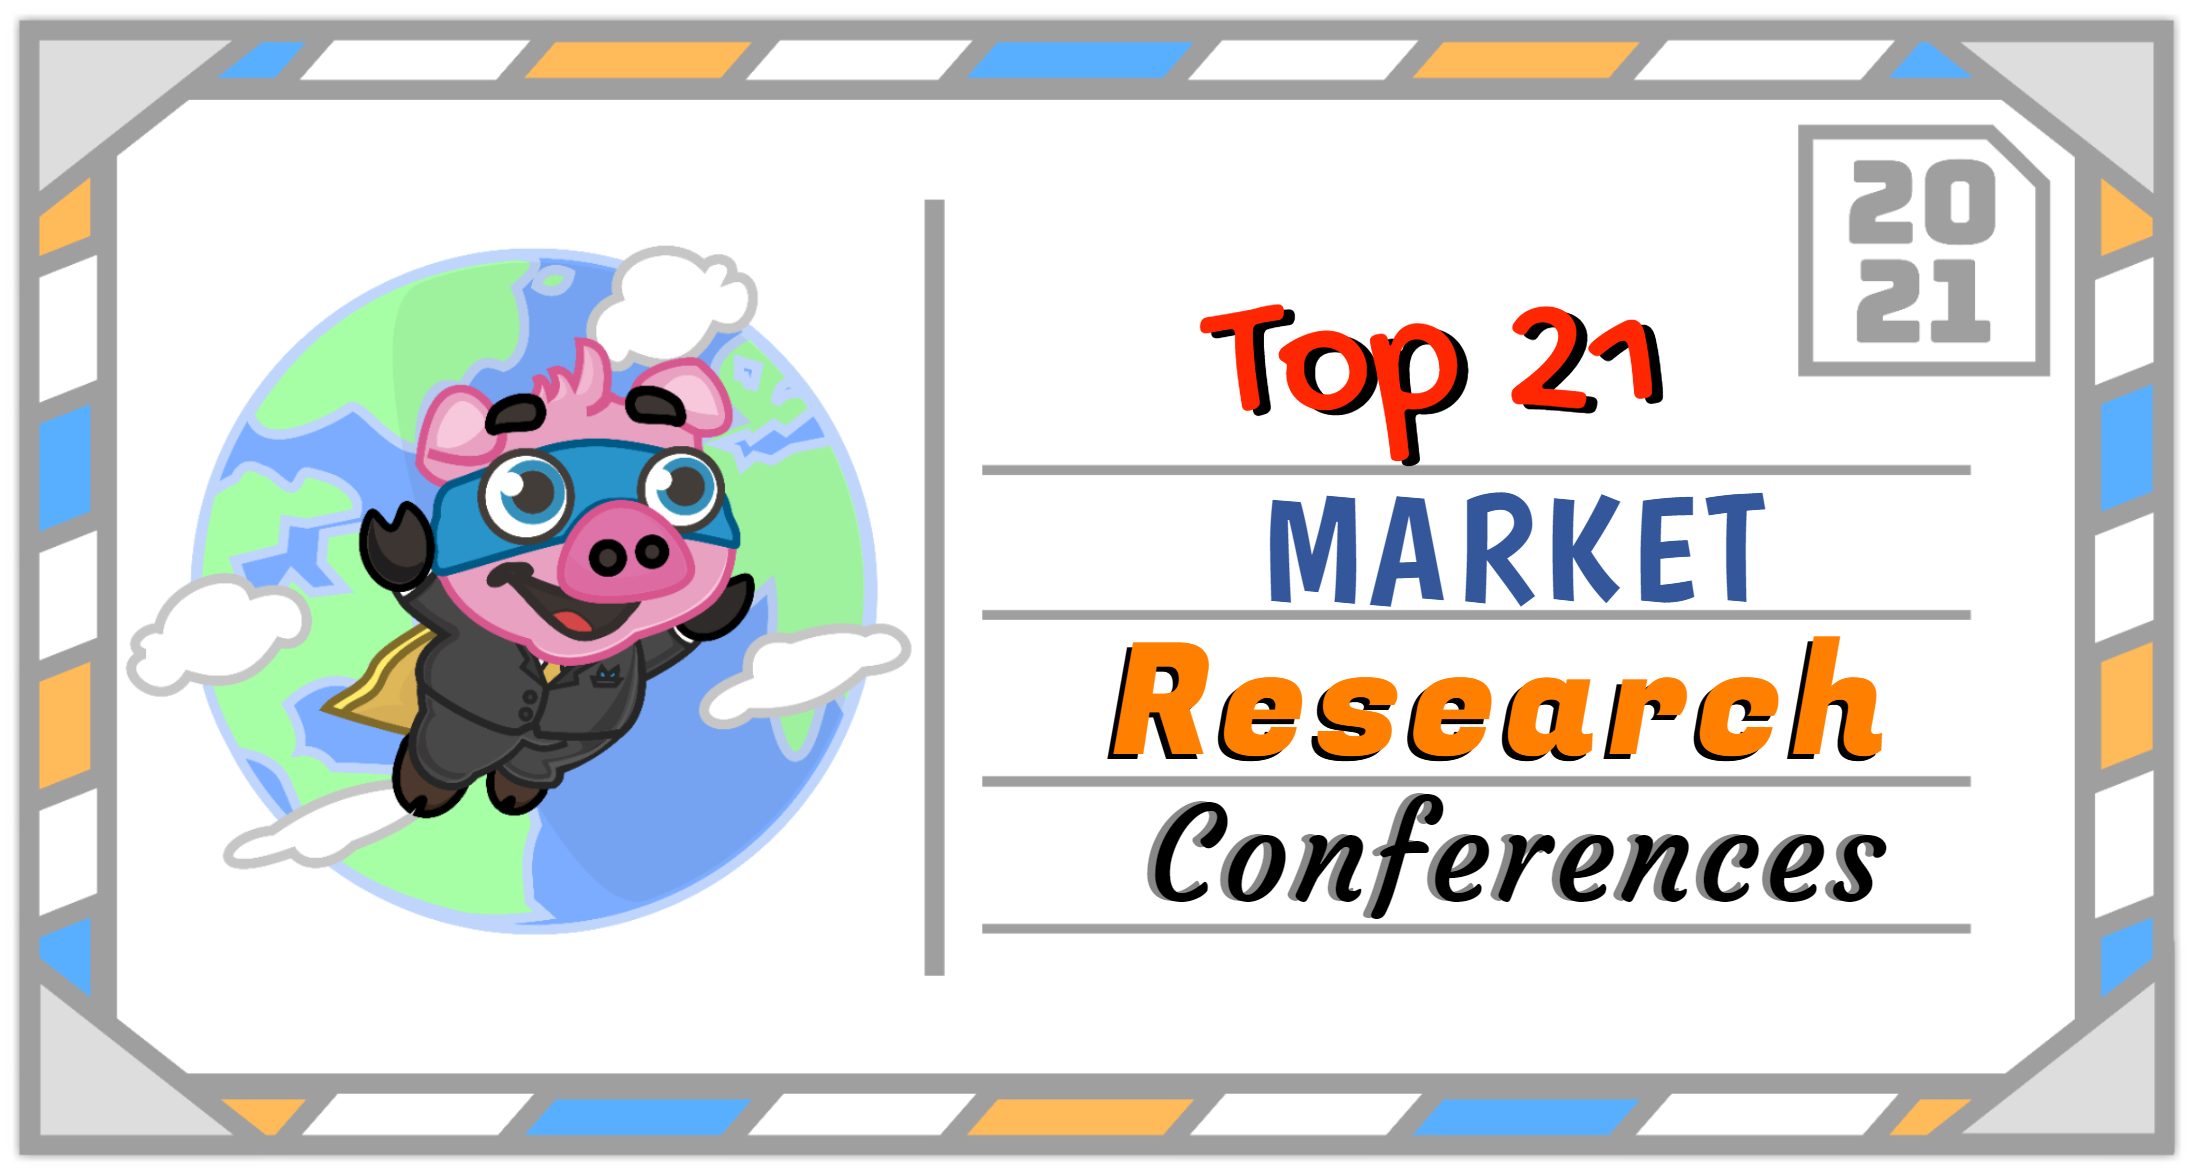 Top 21 Market Research Conferences